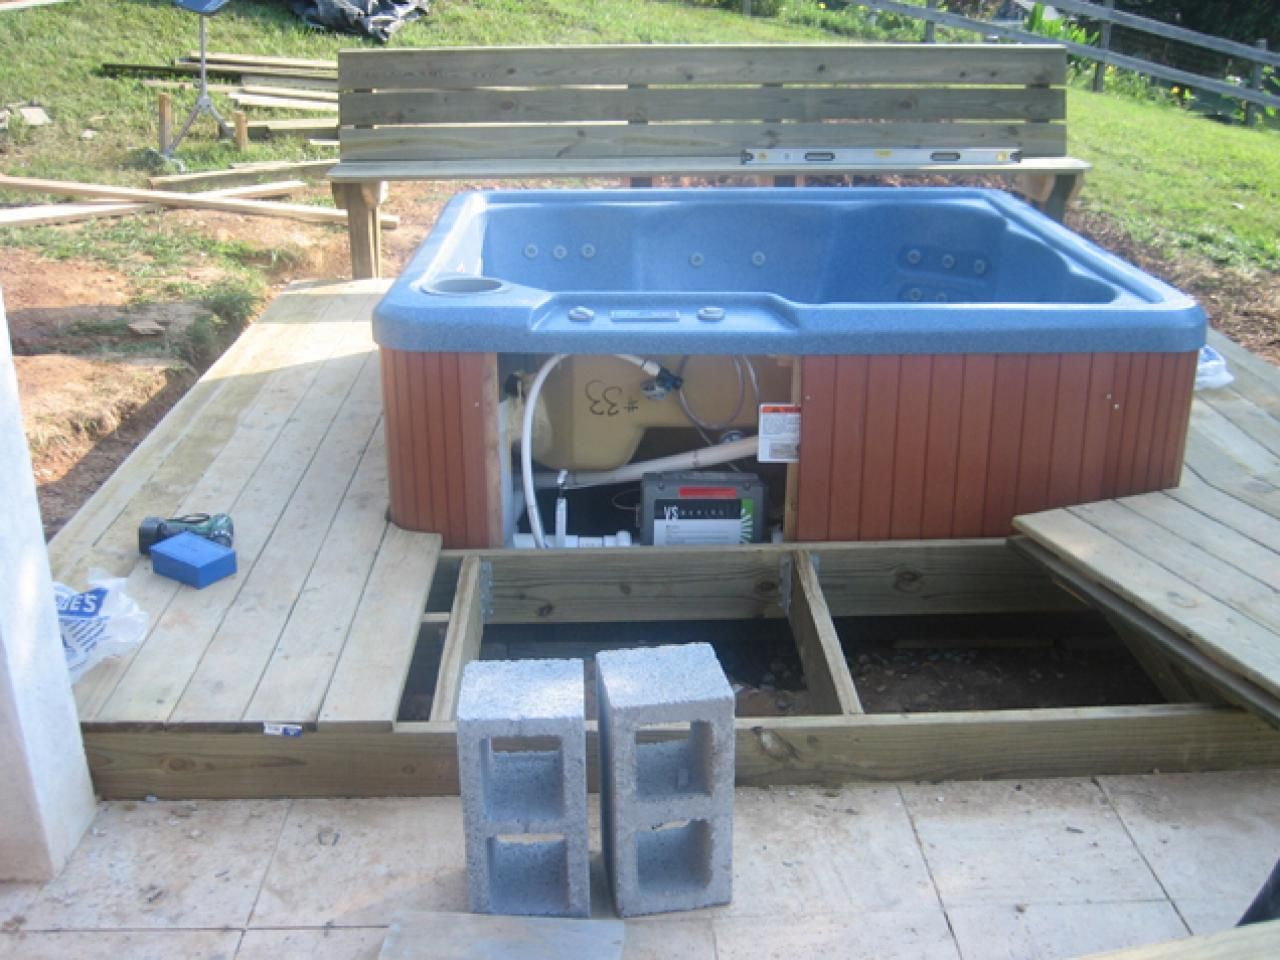 How To Install a Hot Tub On A Deck | Hot tubs, Tubs and Decking